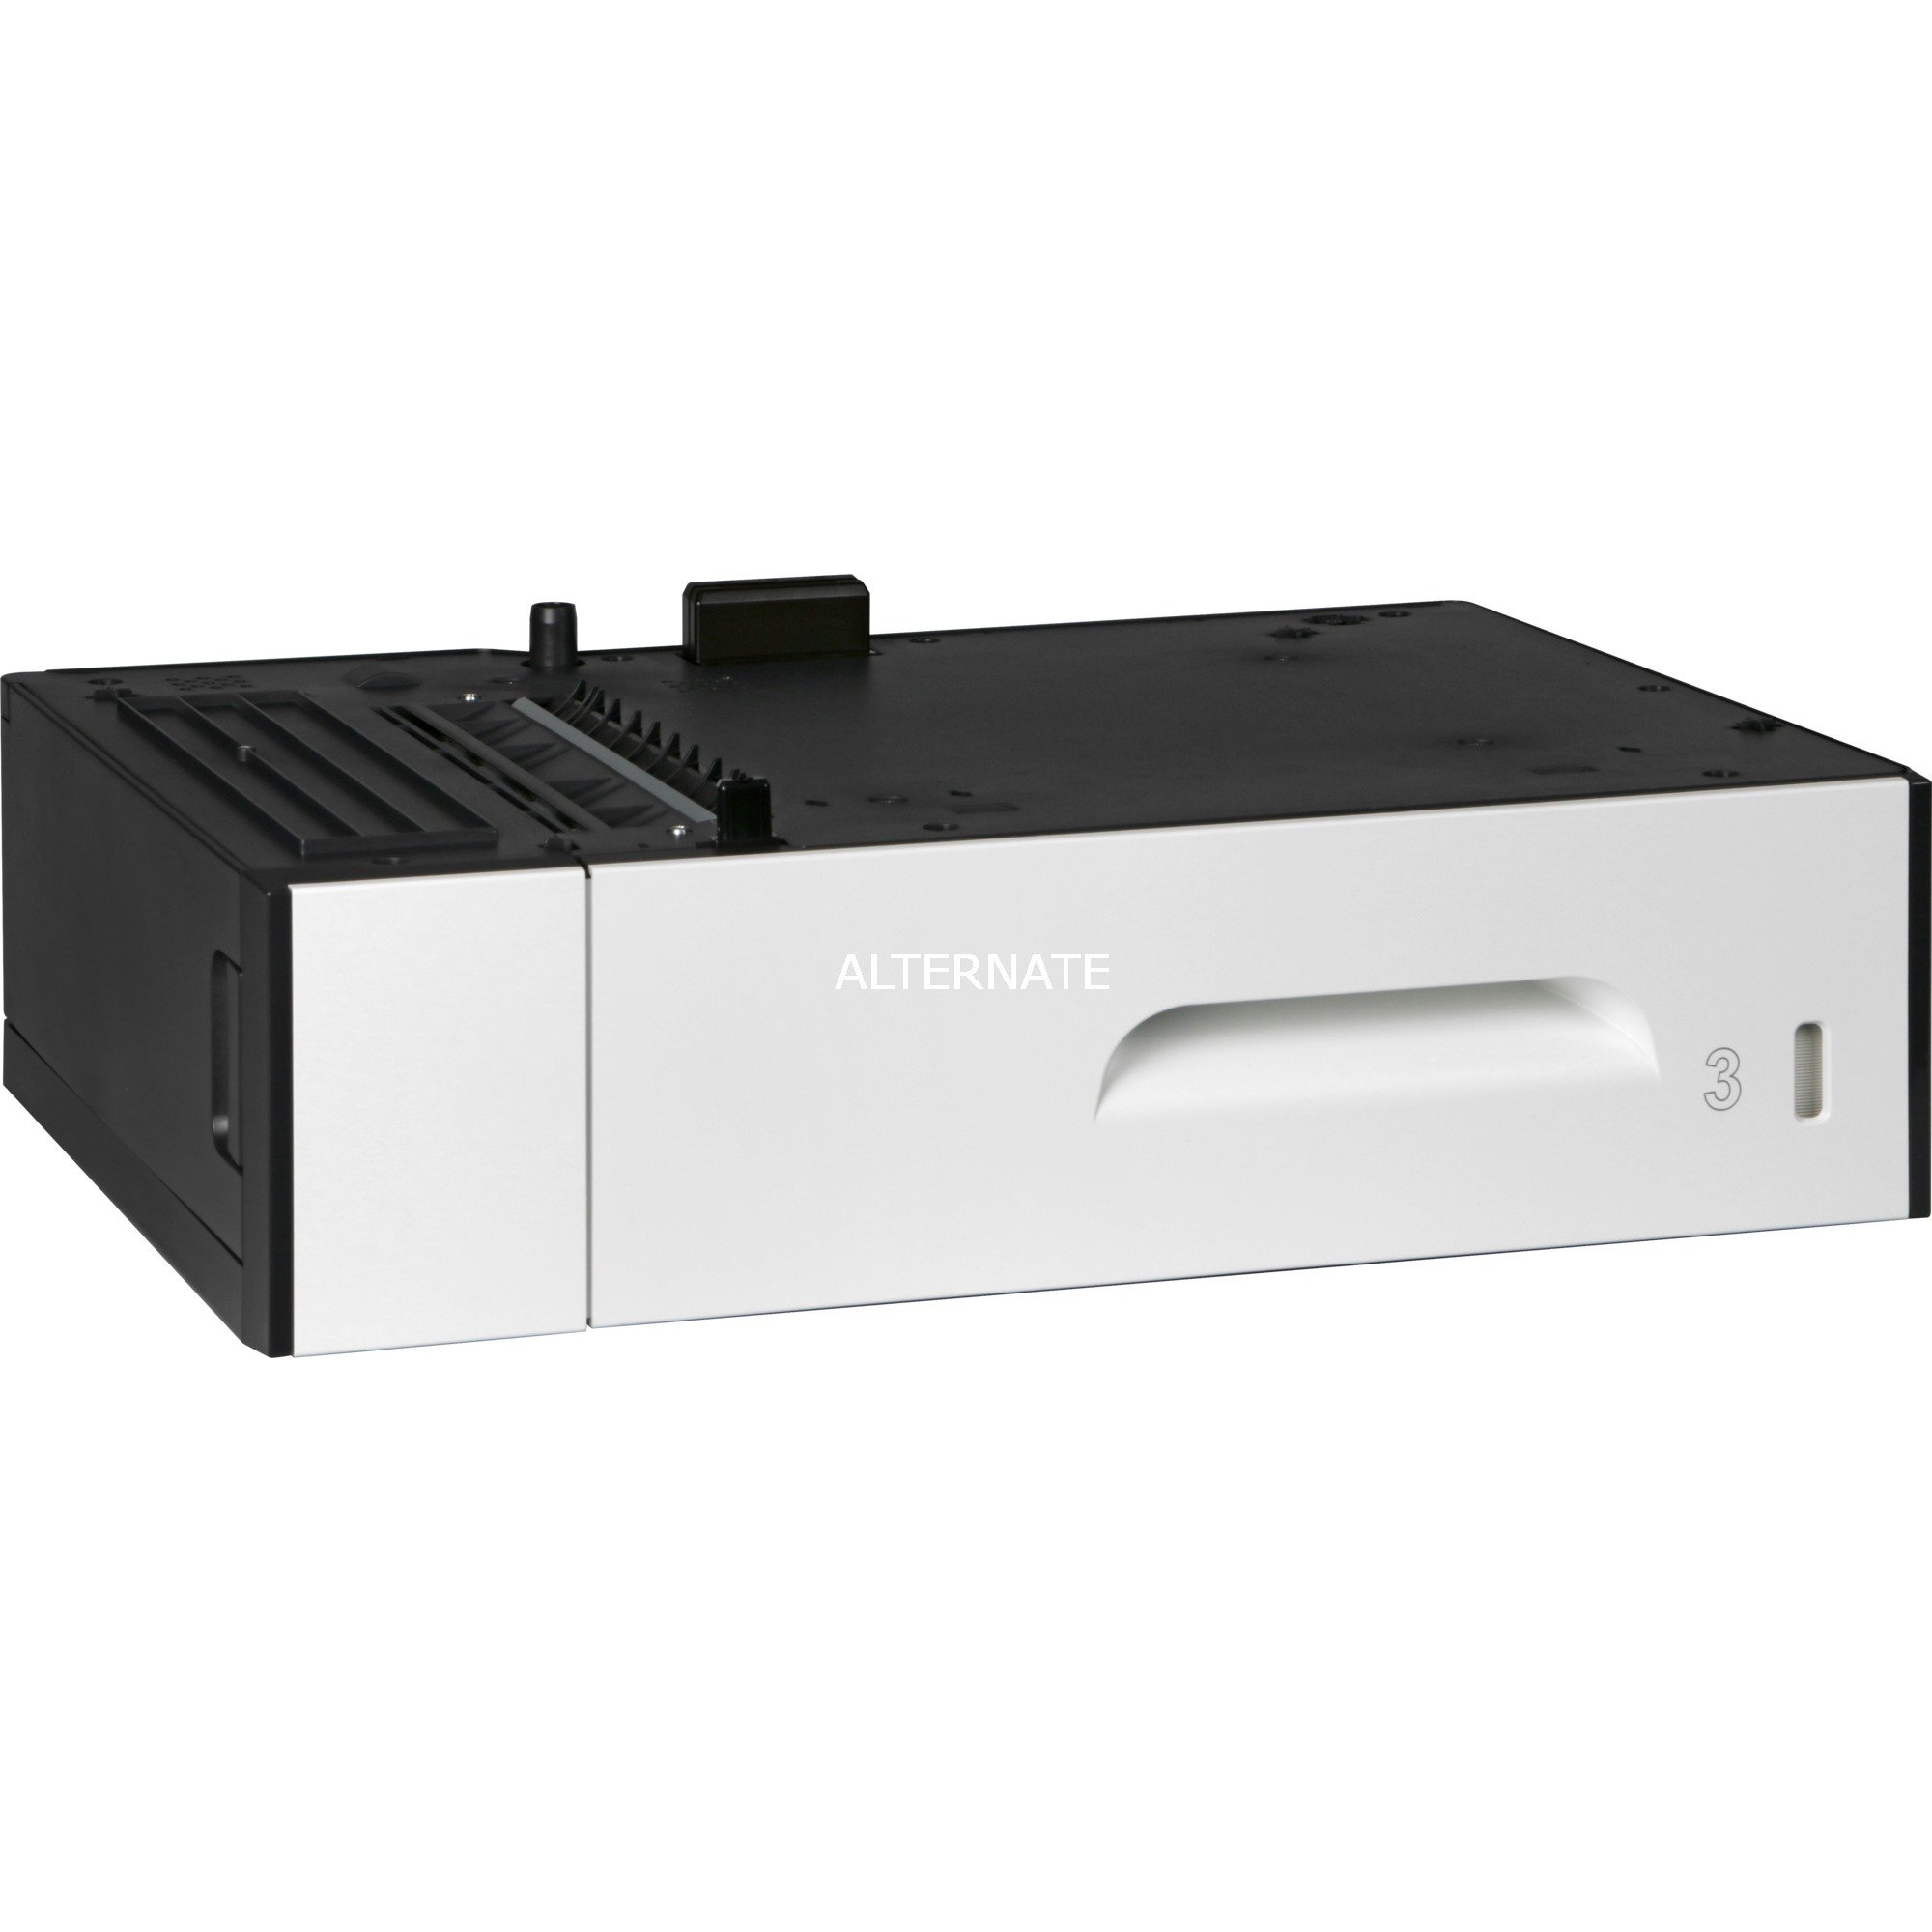 HP PageWide Pro 500-sheet Paper Tray - trays & feeders (Multi-Purpose tray, 500 sheets, HP, HP PageWide Pro 452dw HP PageWide Pro 477dw, 514 mm, 396 mm)